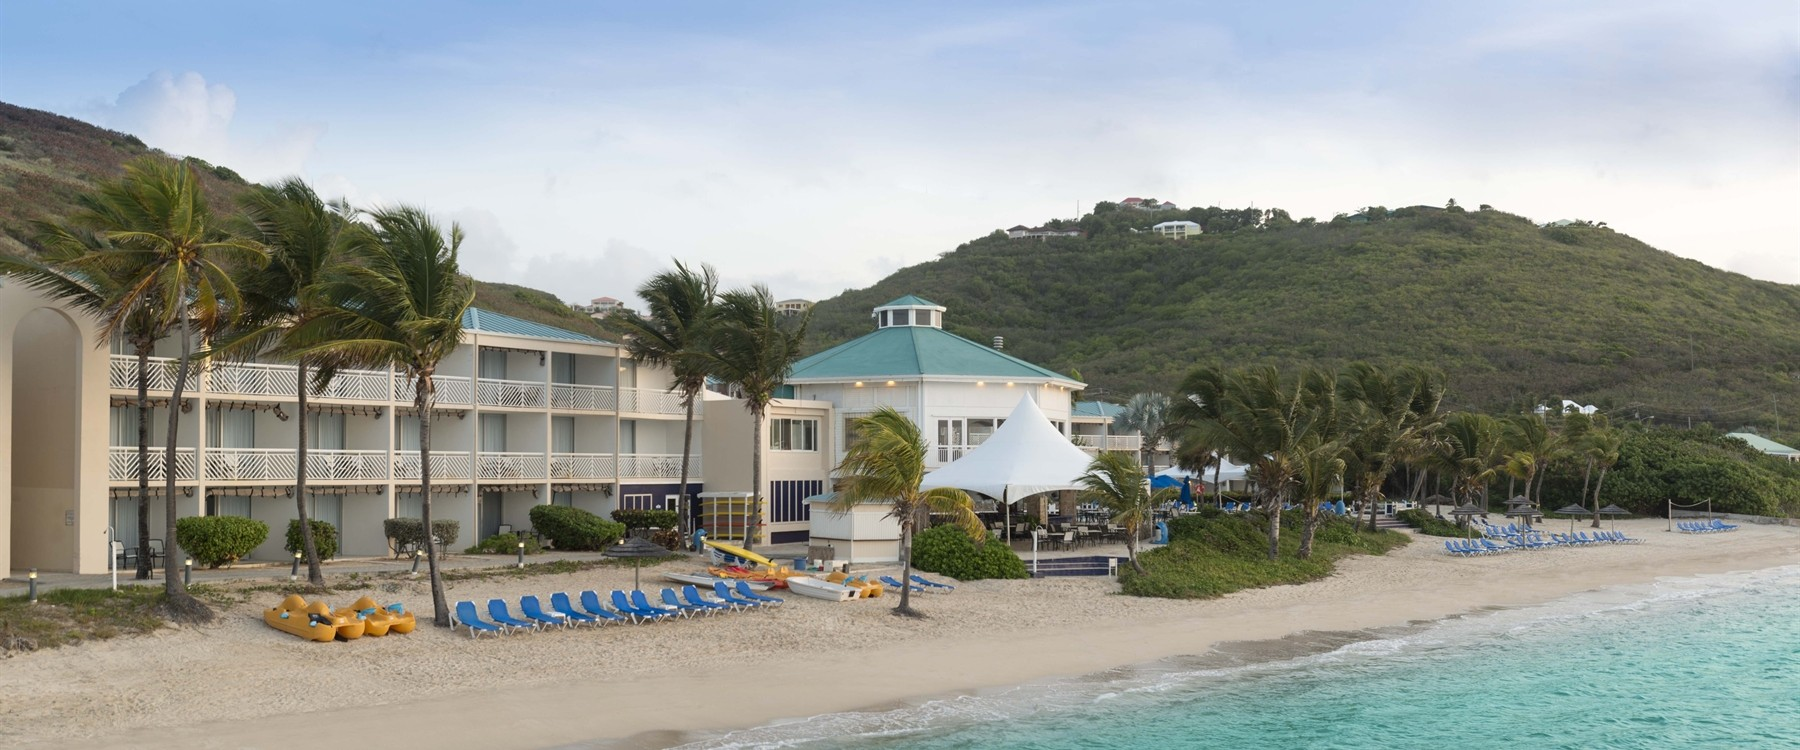 Hotel deals the travel enthusiast - Divi all inclusive resorts ...